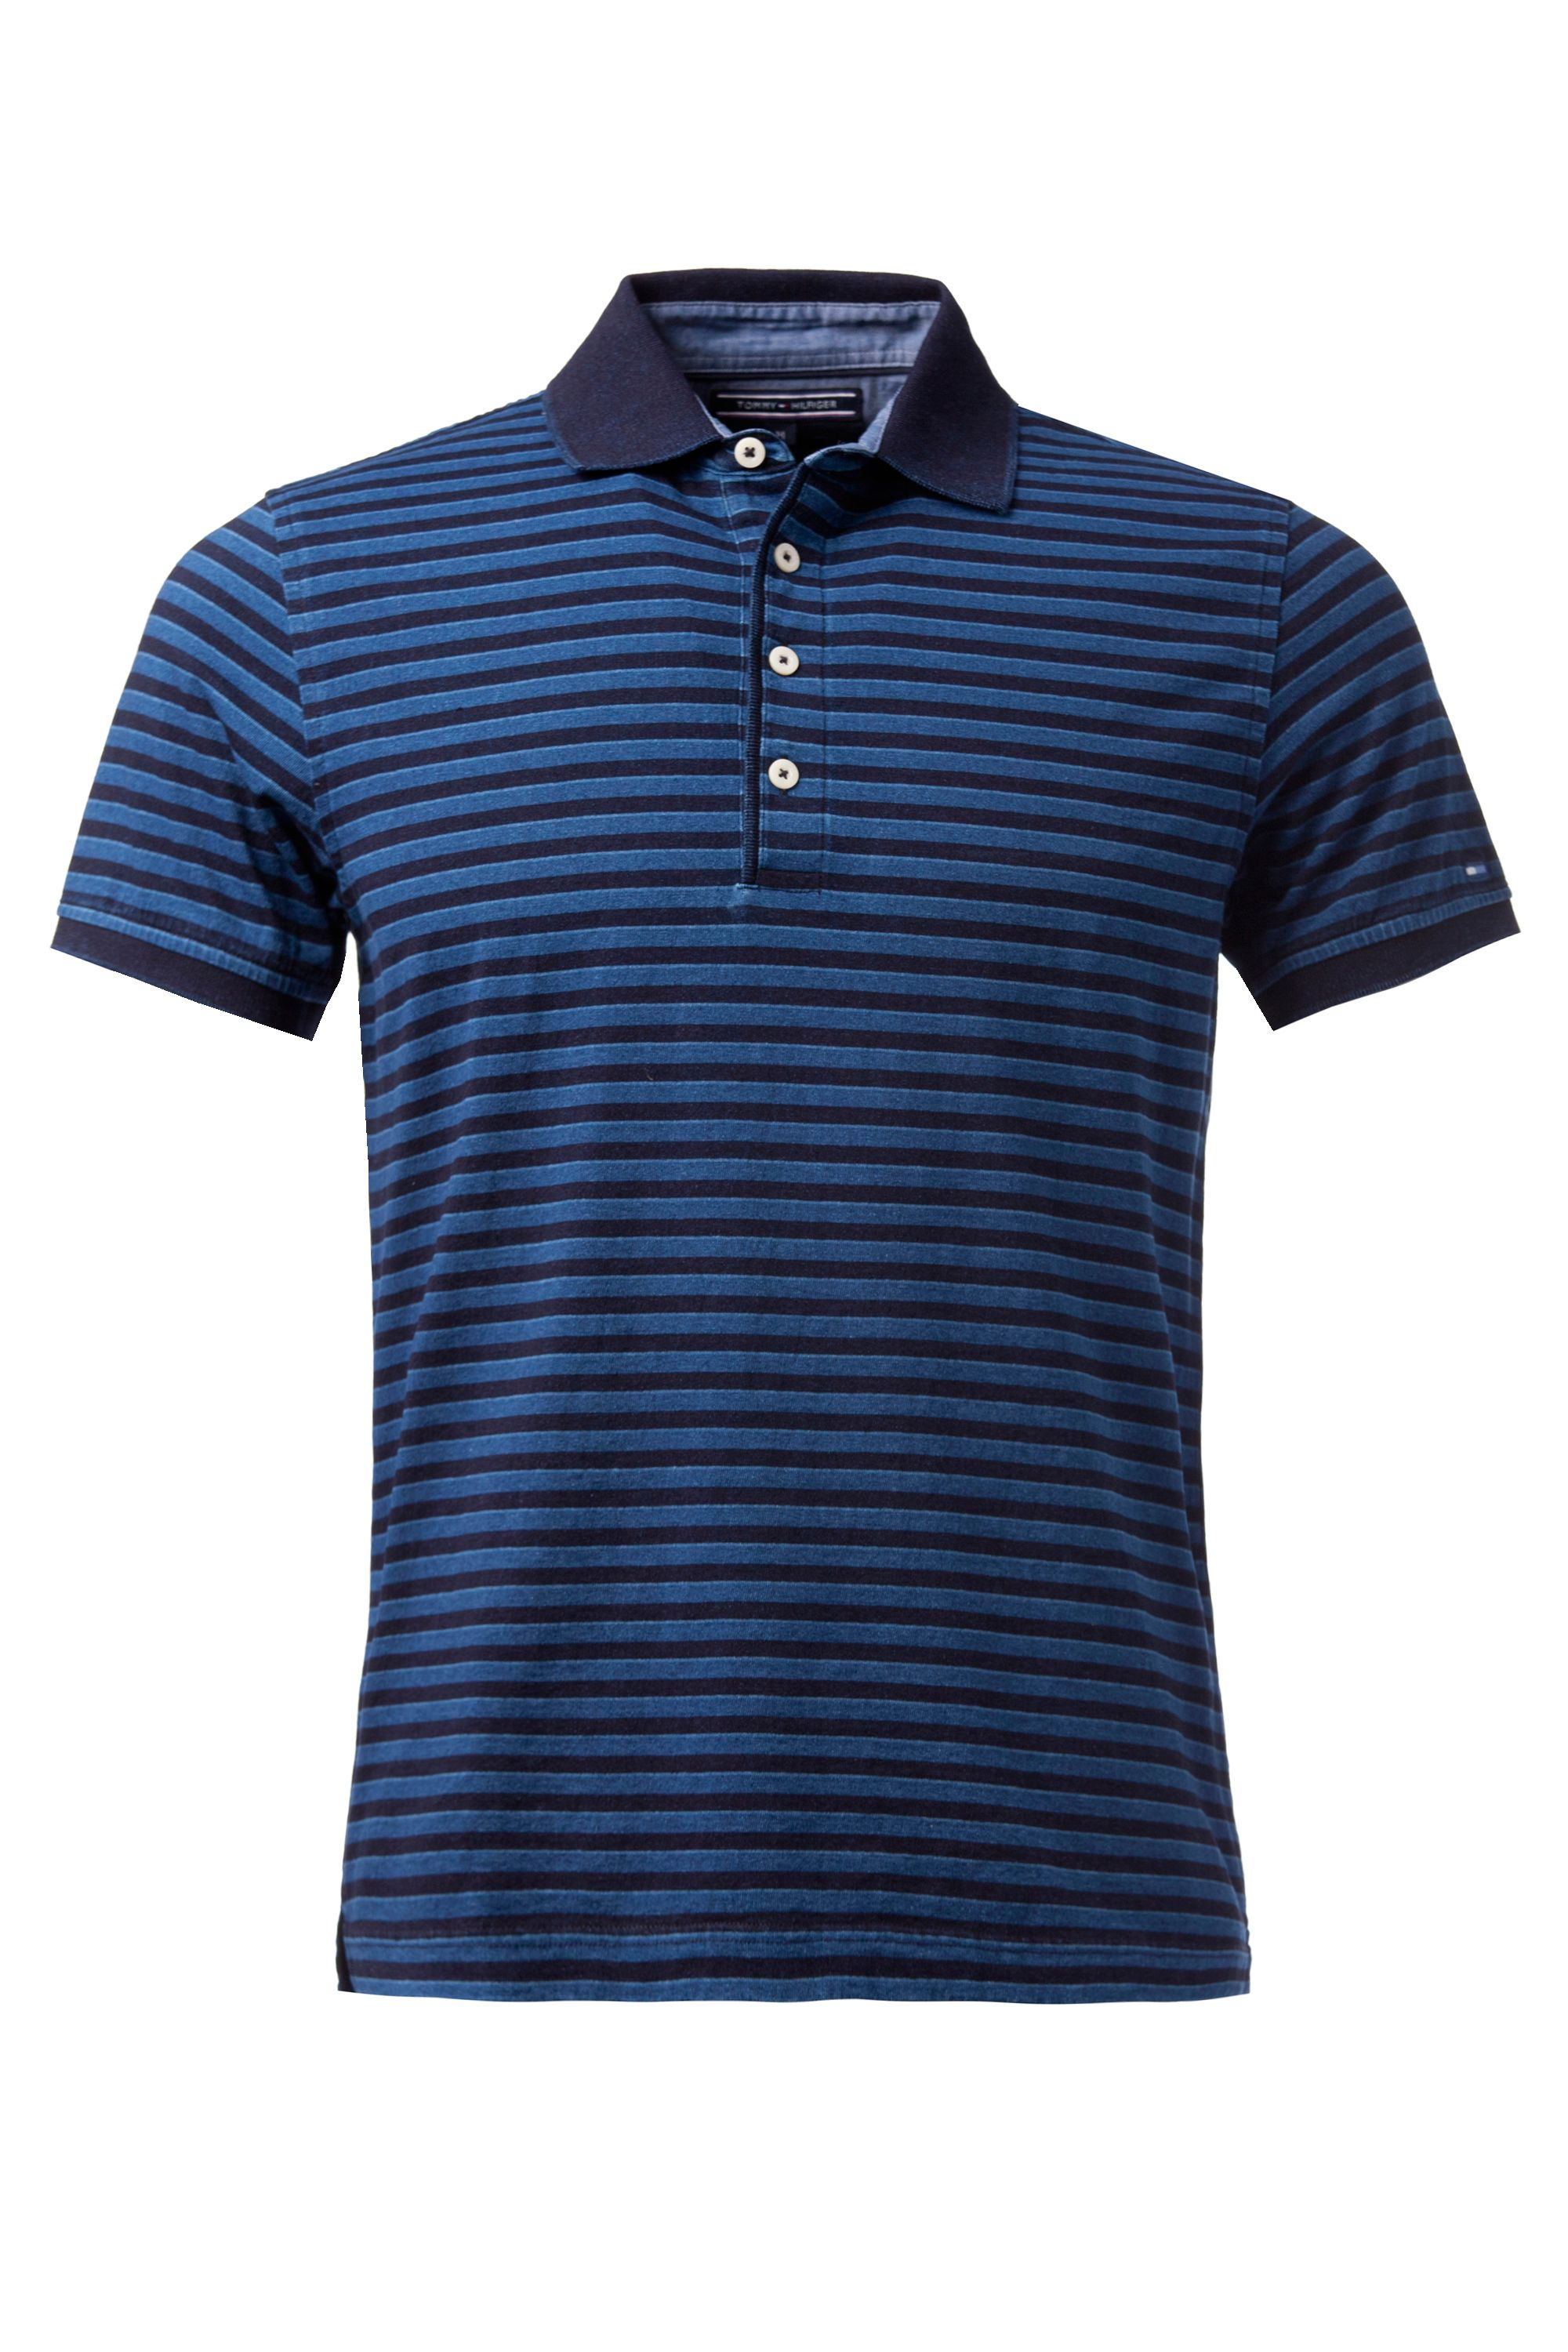 tommy hilfiger austin stripe slim fit polo shirt in blue for men dark. Black Bedroom Furniture Sets. Home Design Ideas